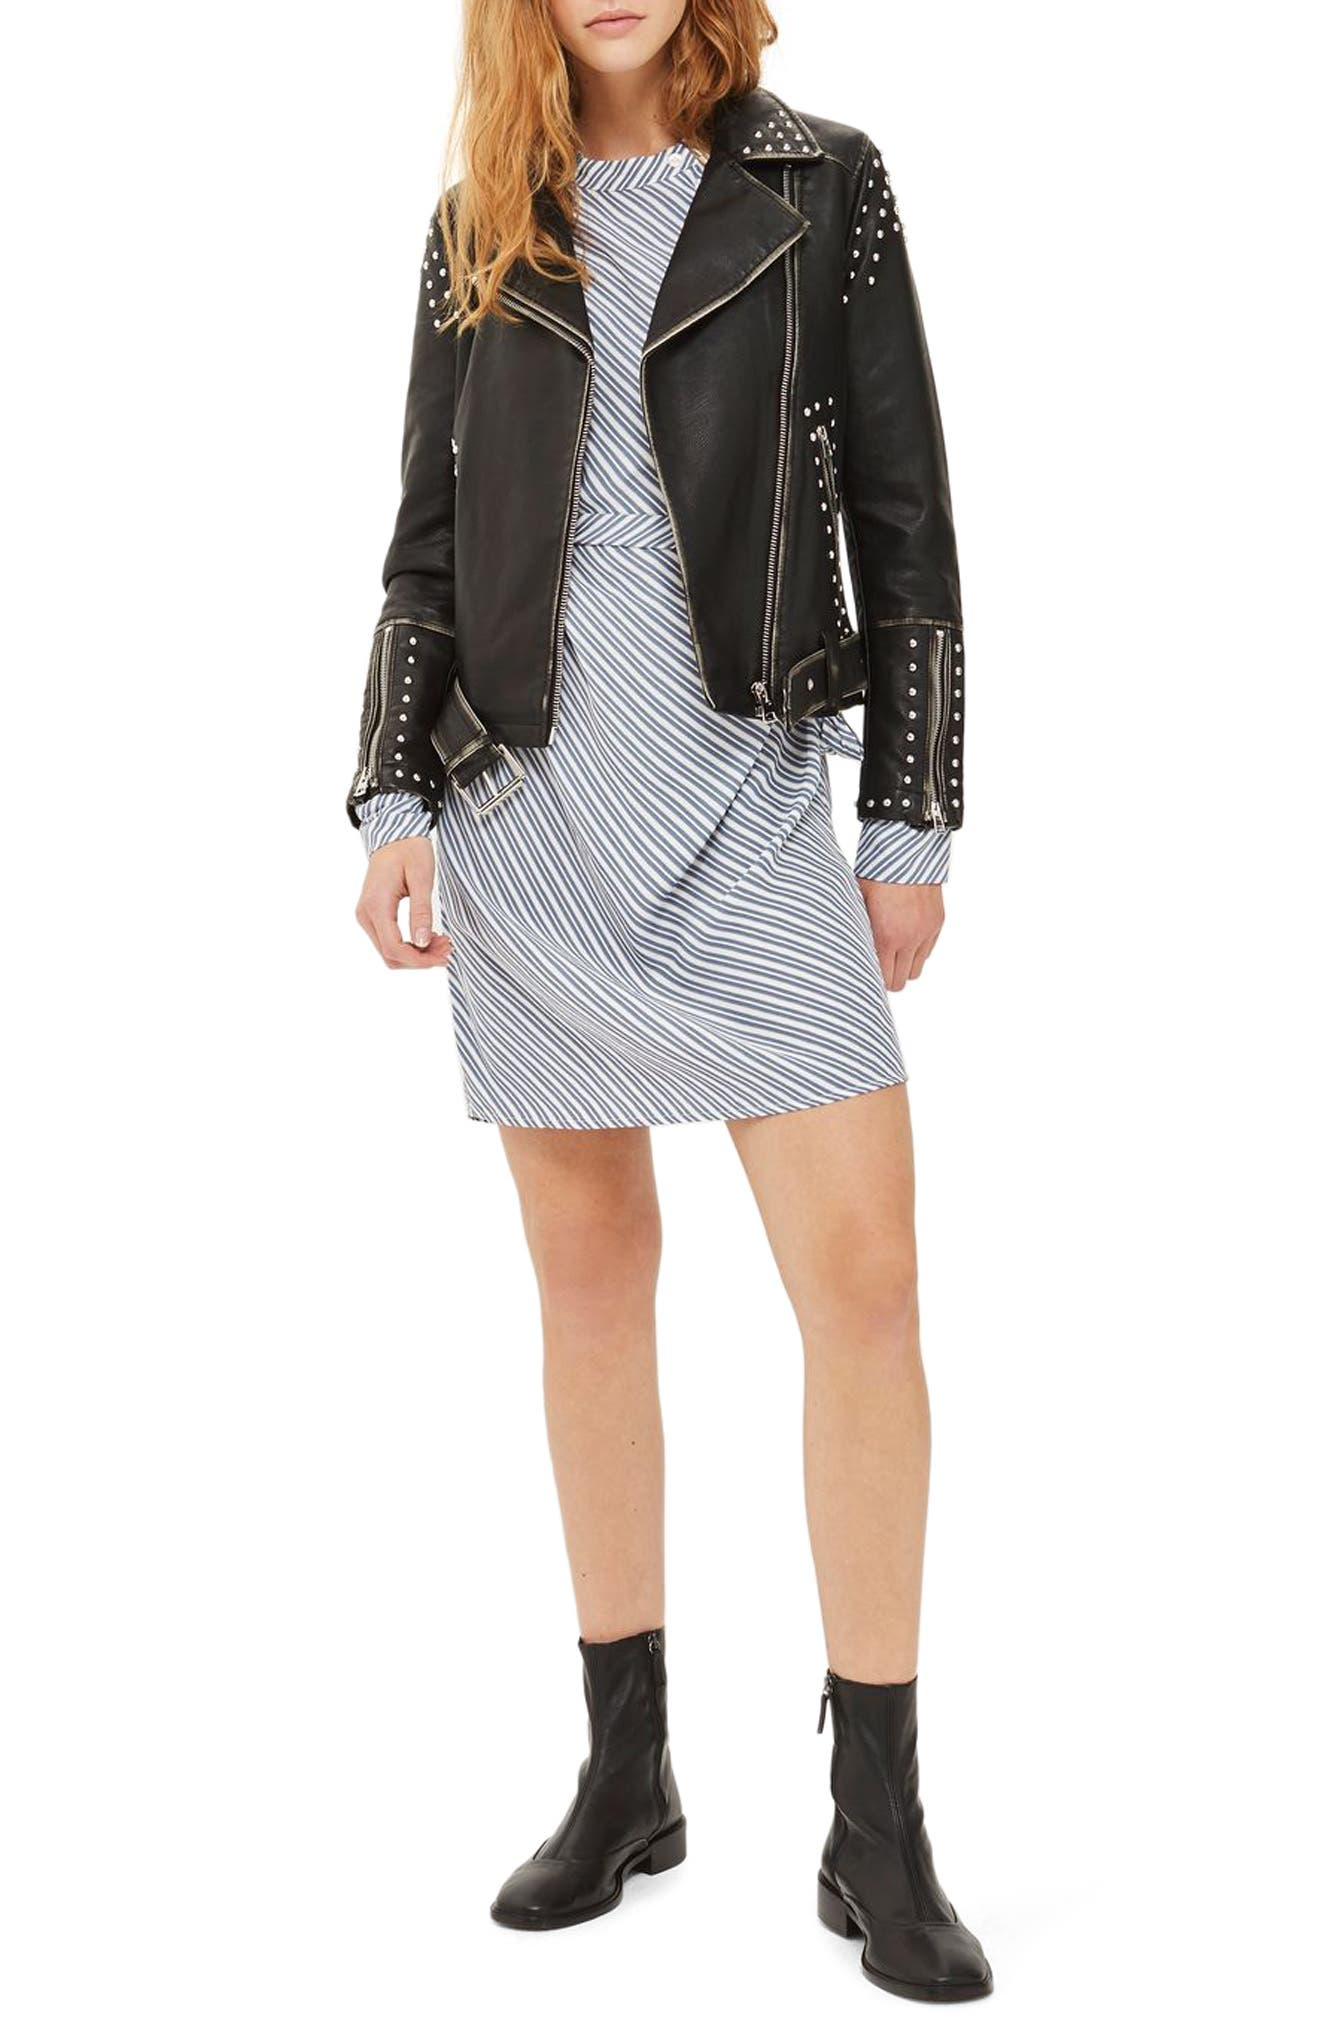 Alternate Image 1 Selected - Topshop Naomi Studded Faux Leather Biker Jacket